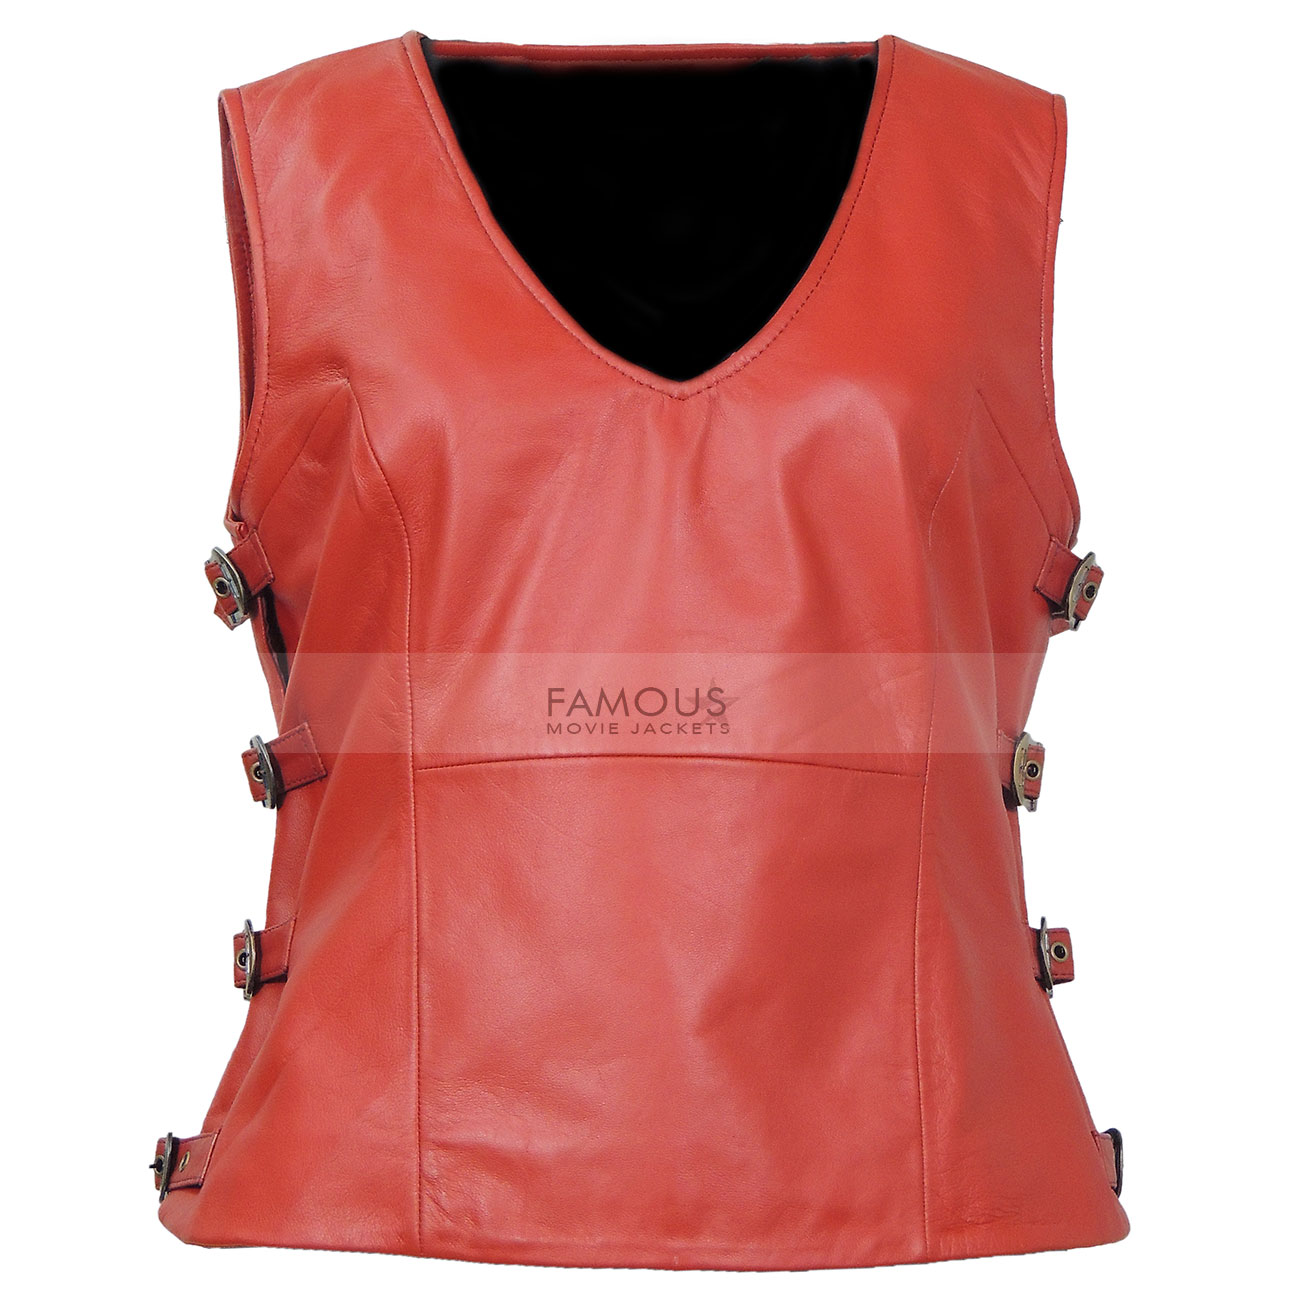 Firefly TV Series Zoe Washburne (Gina) Brown Leather Vest